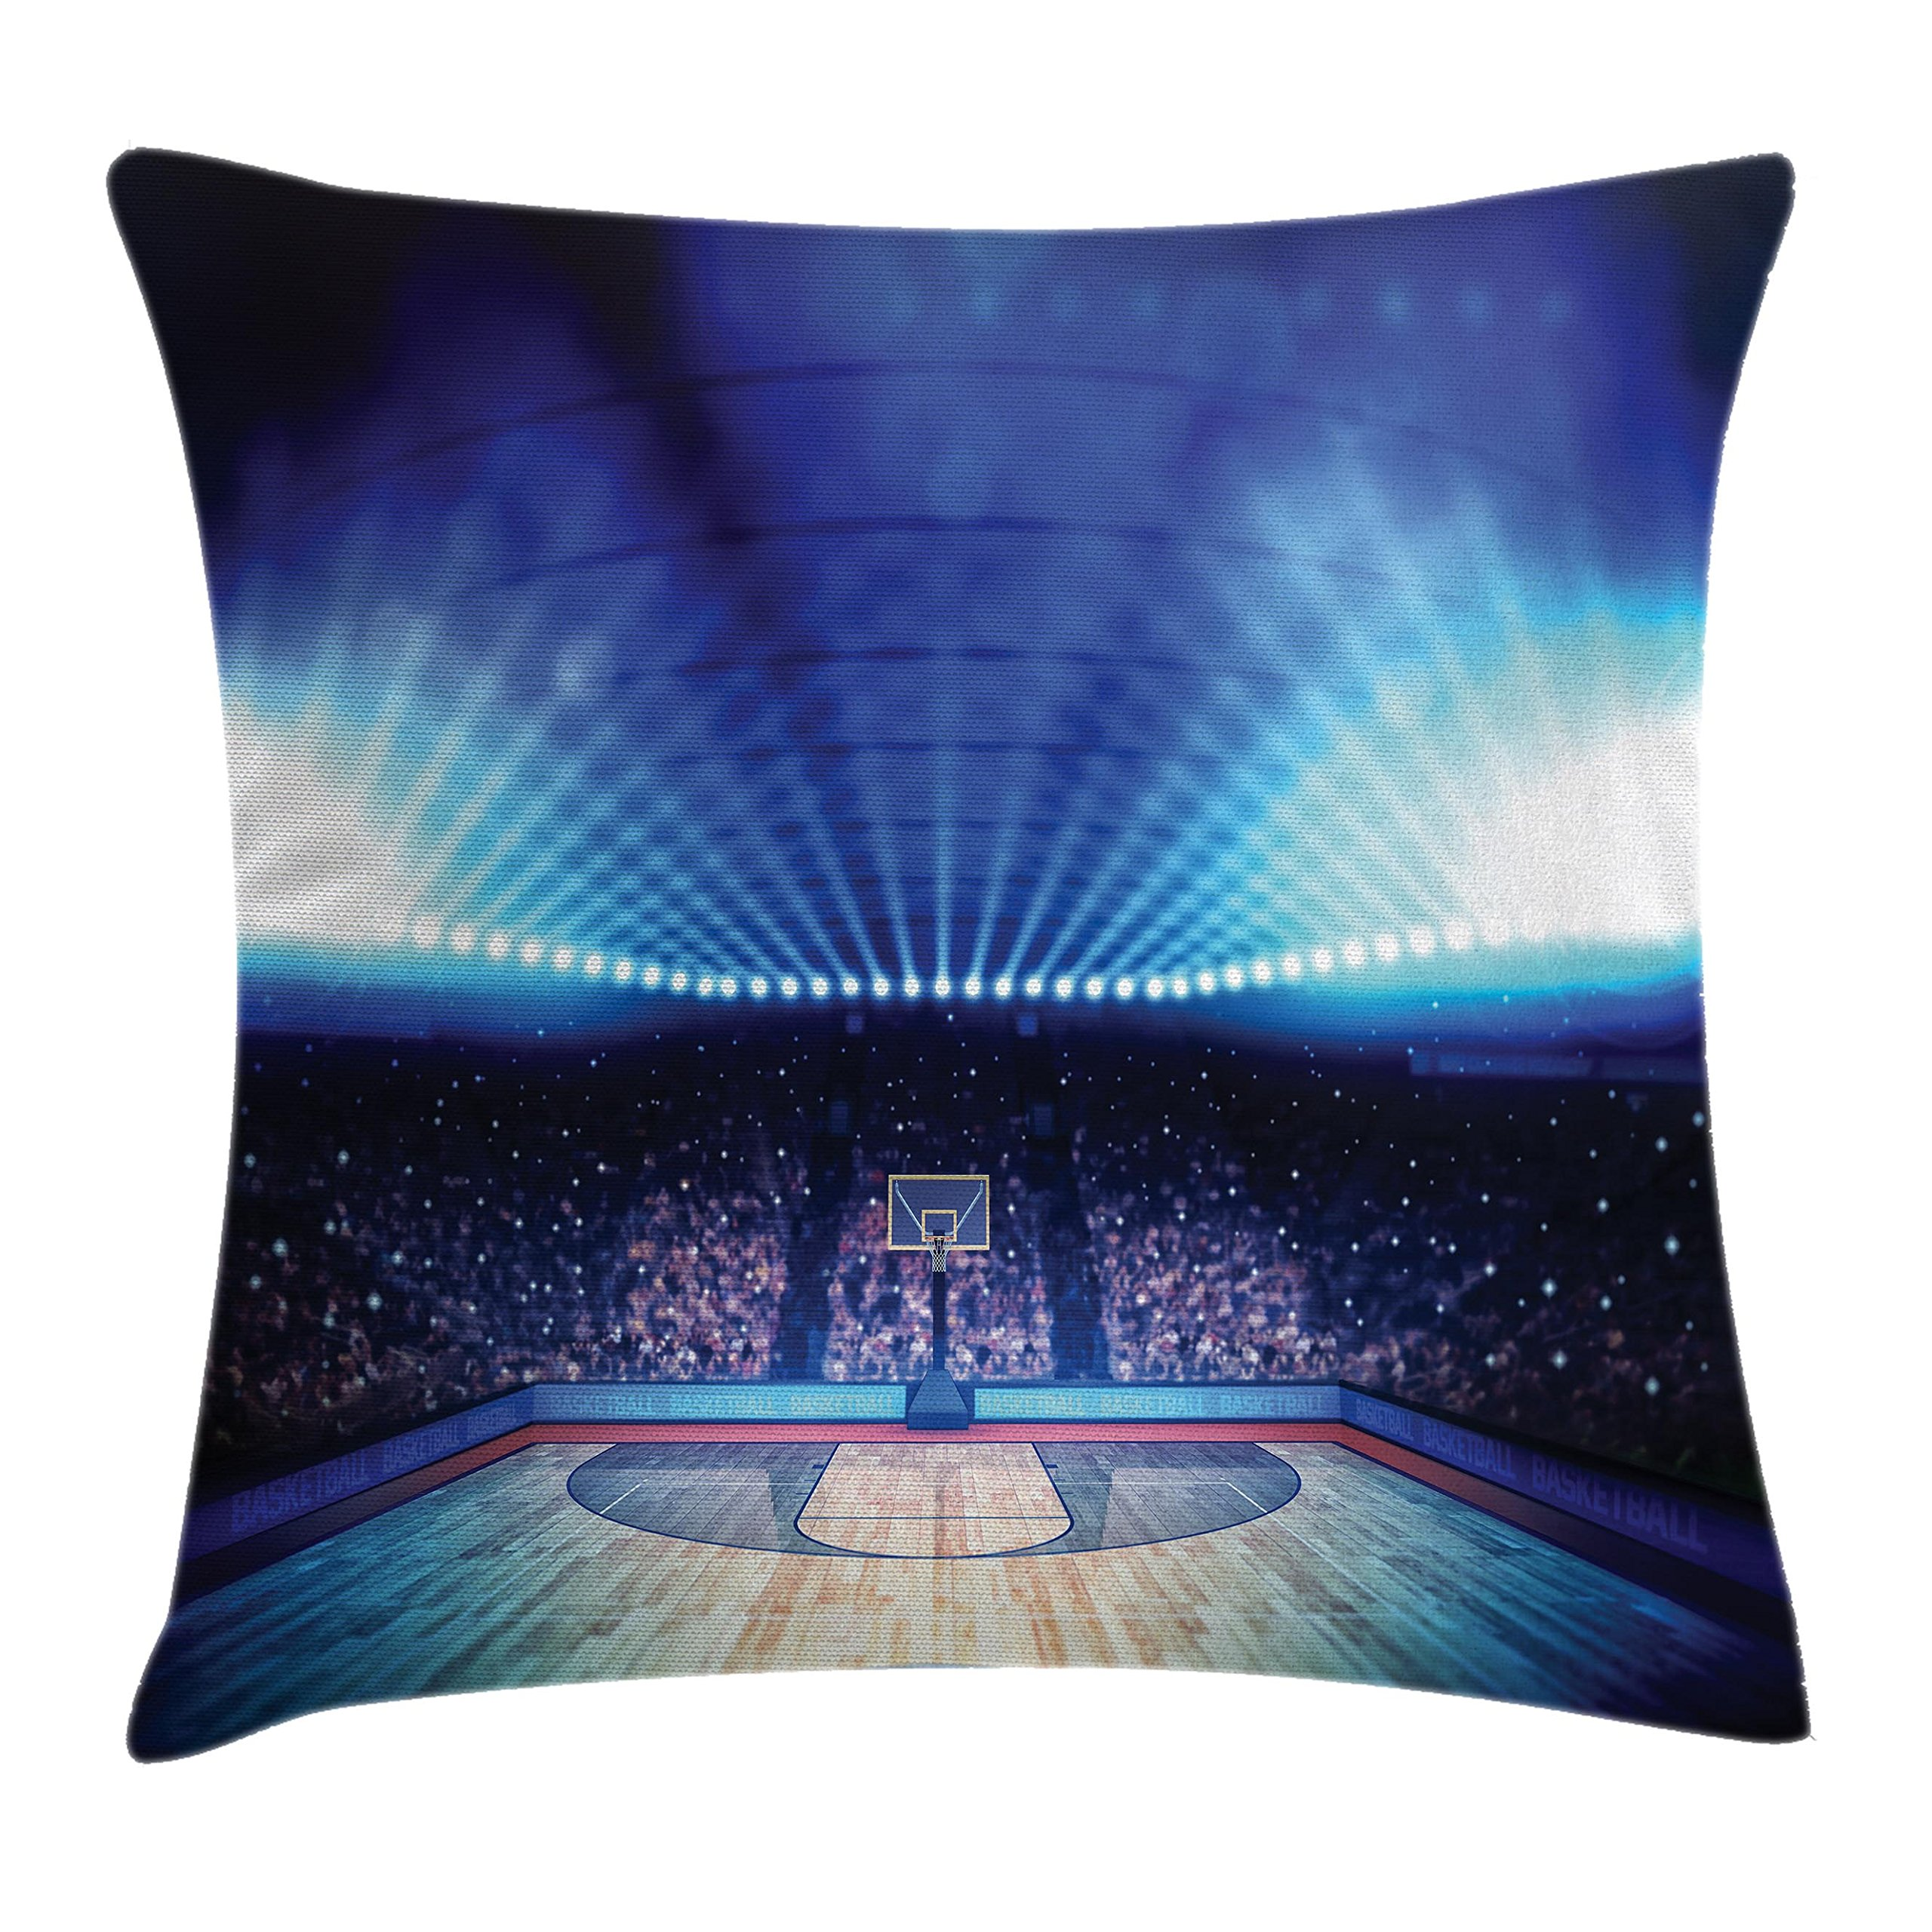 Ambesonne Sports Decor Throw Pillow Cushion Cover, Basketball Arena Court with Fans and Flashlights Competition Theme Game Print, Decorative Square Accent Pillow Case, 20 X 20 inches, Navy Black